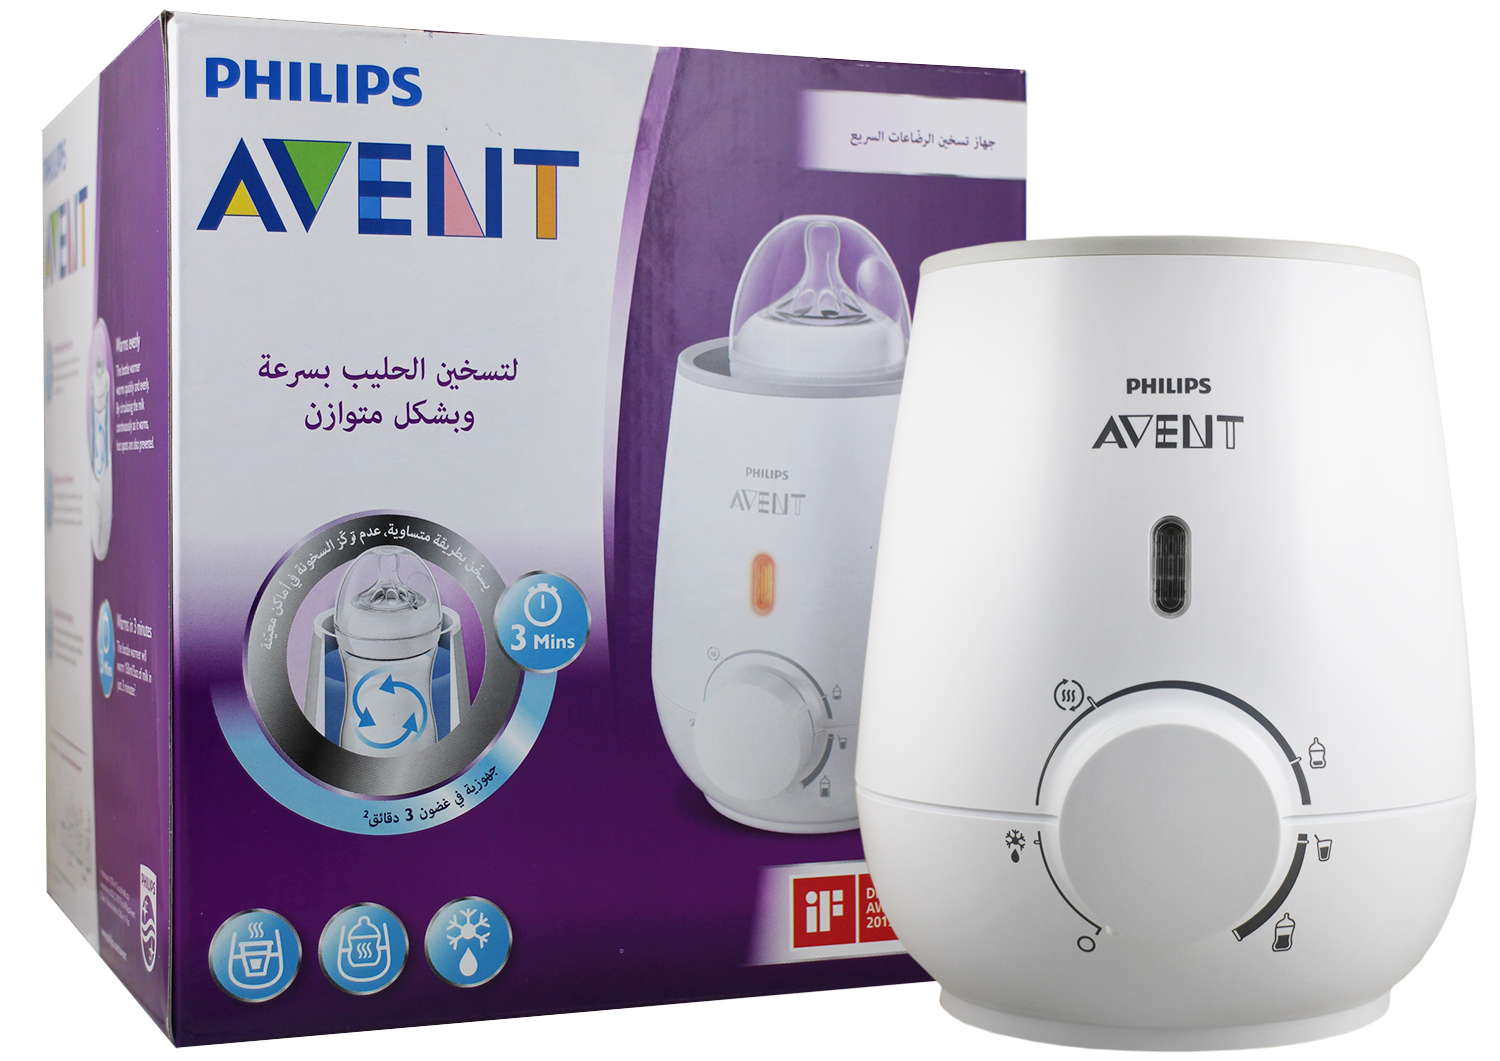 Ready In 3 Minutes Philips Avent Fast Bottle Warmer